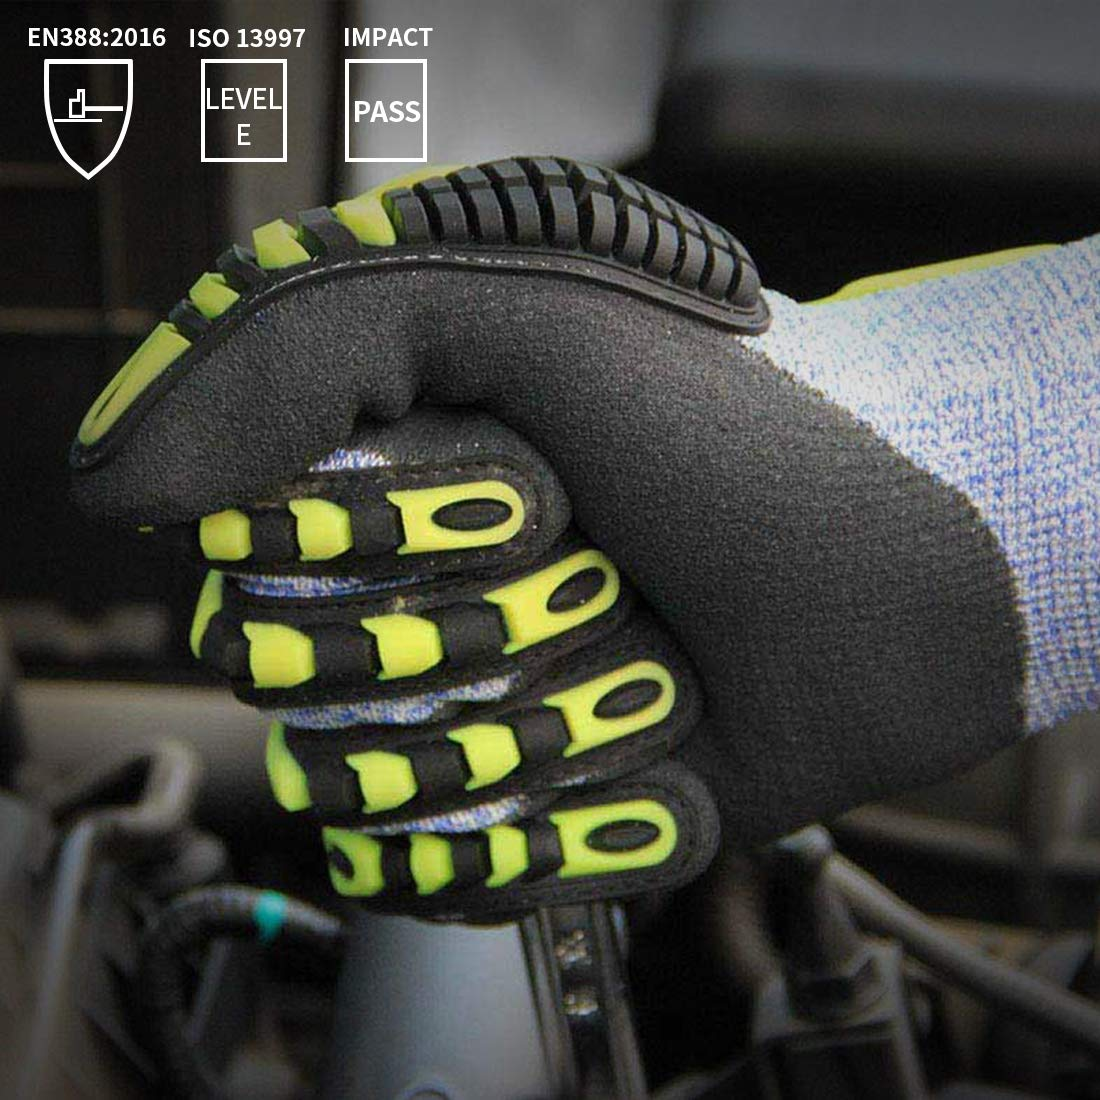 Impact Reducing Safety Gloves, Vibration & Abrasion & Cut Resistant, Ideal for Heavy Duty Safety Work like Mechanic, Garden Construction, Car Repairing Industrial, 1 Pair by KARRISM 5